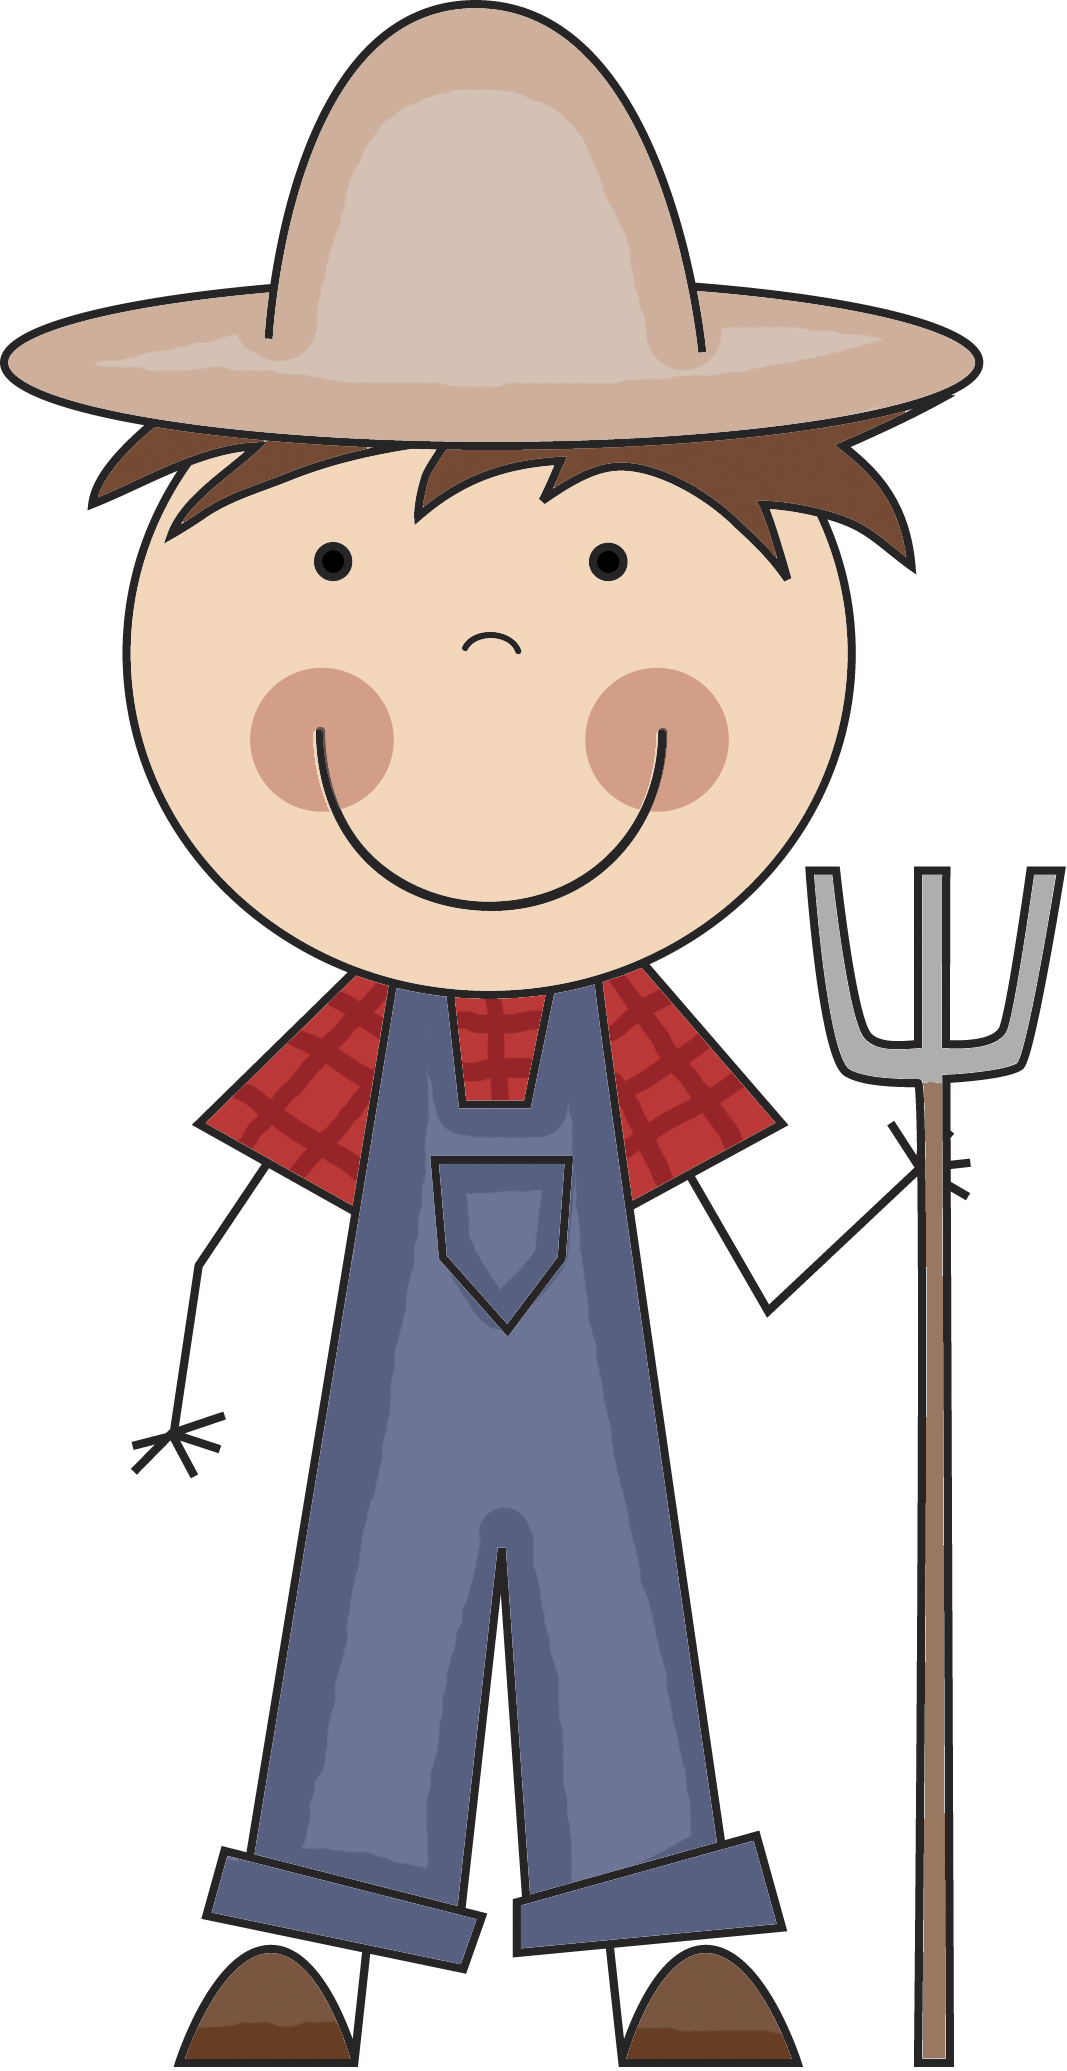 Farm cartoon png. Farmer images free download